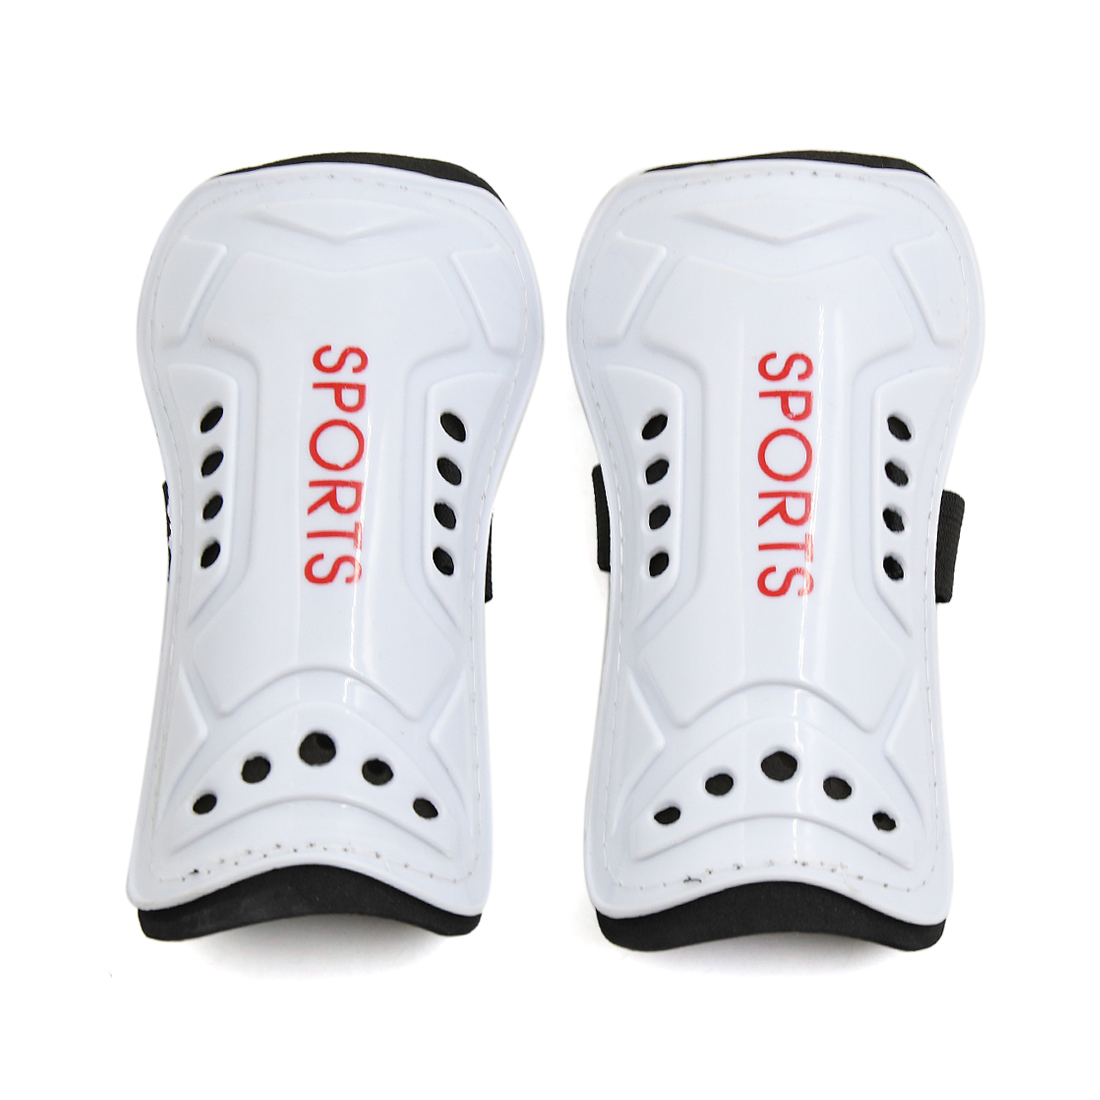 1 Pair White Plastic Foam Football Outdoor Sports Shin Pad Protective Gear Legs Guards